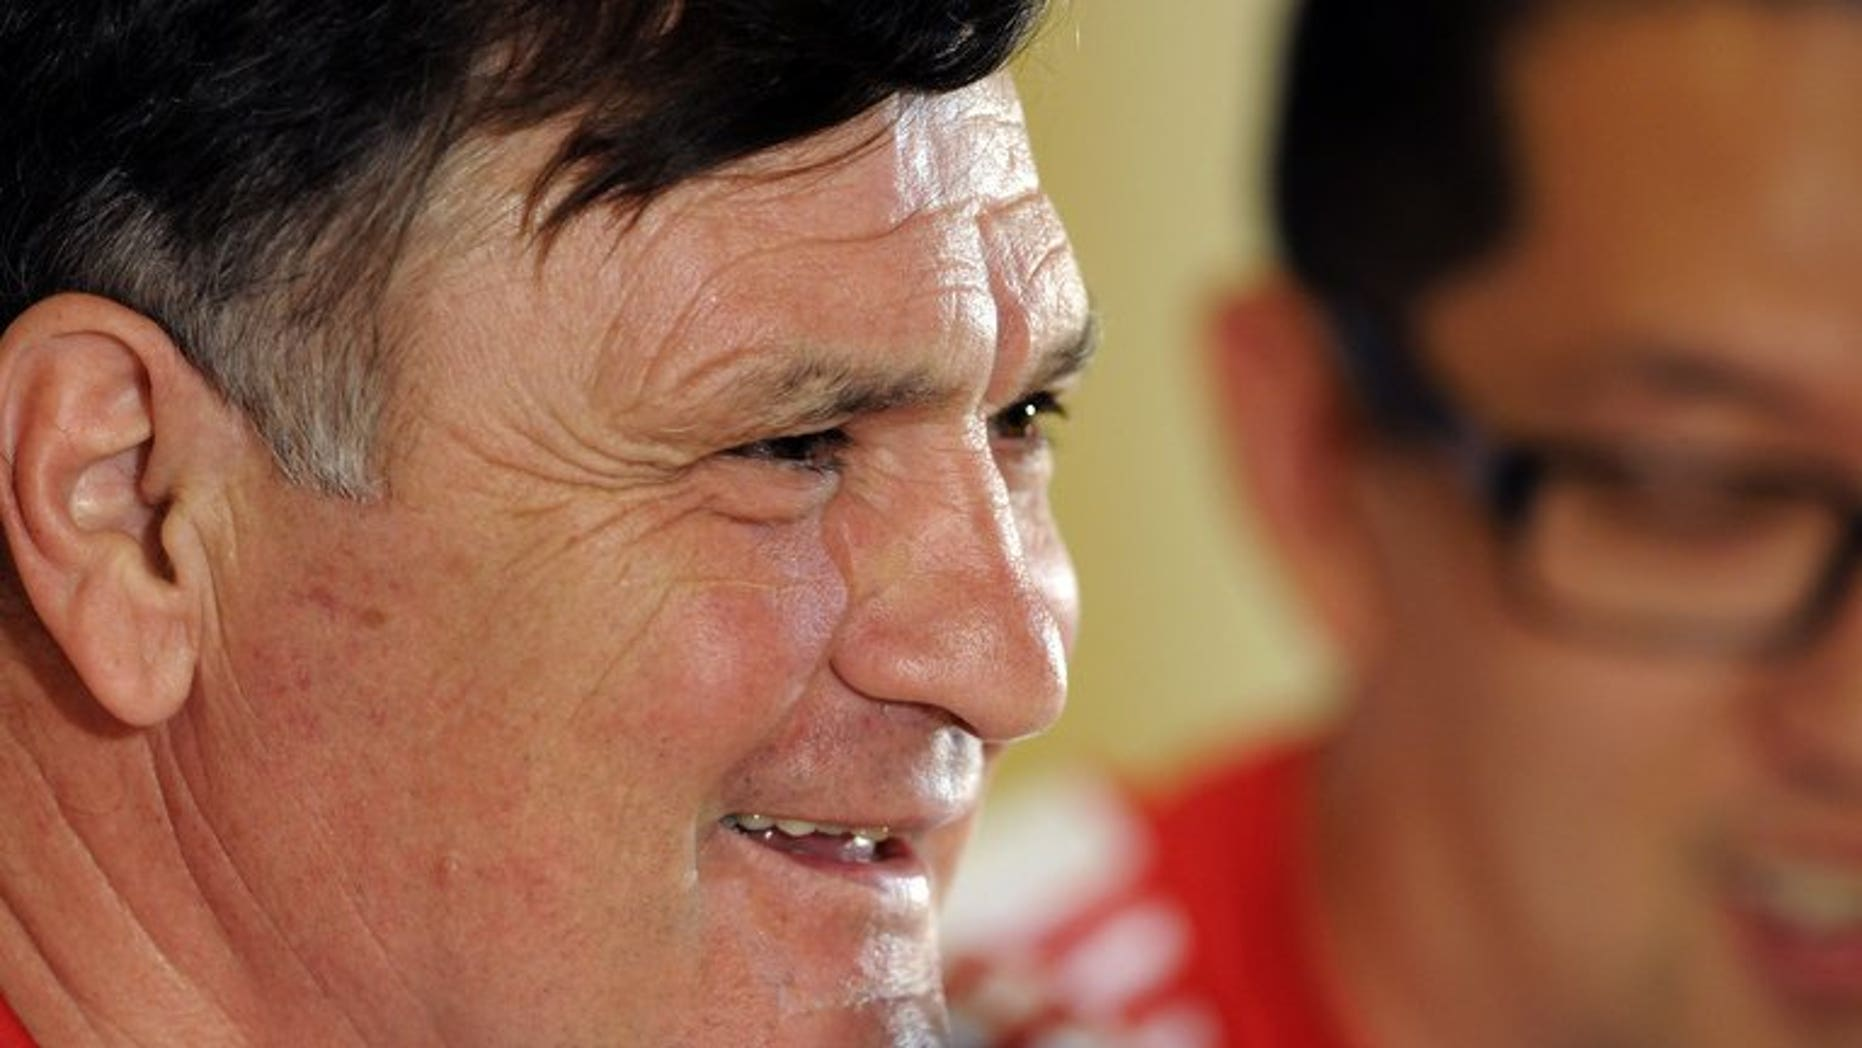 China's Spanish coach Jose Antonio Camacho gives a press conference in Sevilla on June 2, 2012. China's sports authorities are negotiating to end the contract of Camacho, state television said, after a humiliating defeat to Thailand.